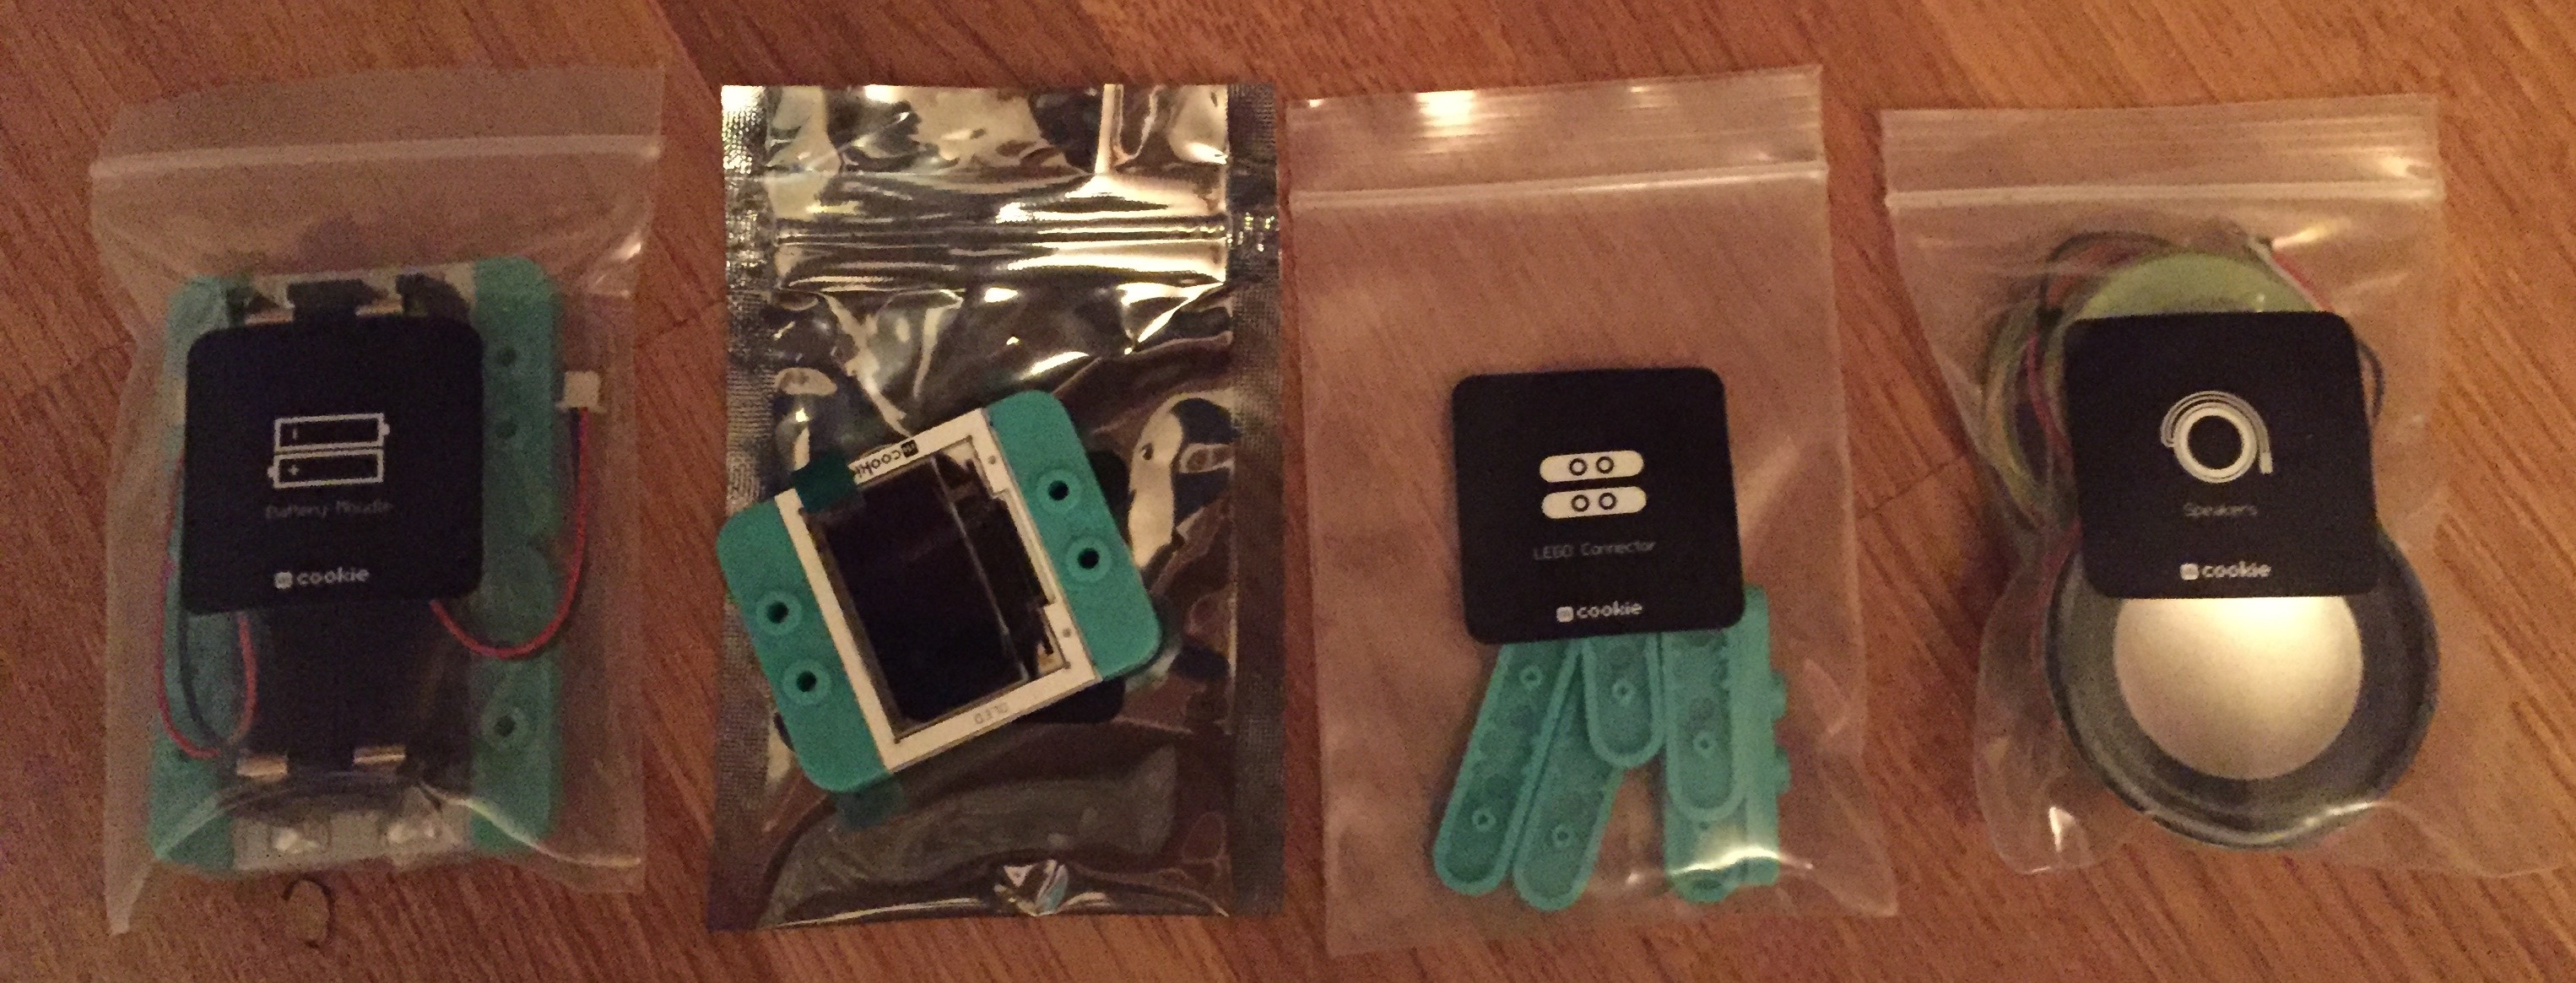 mCookie Microduino OLED screen and parts